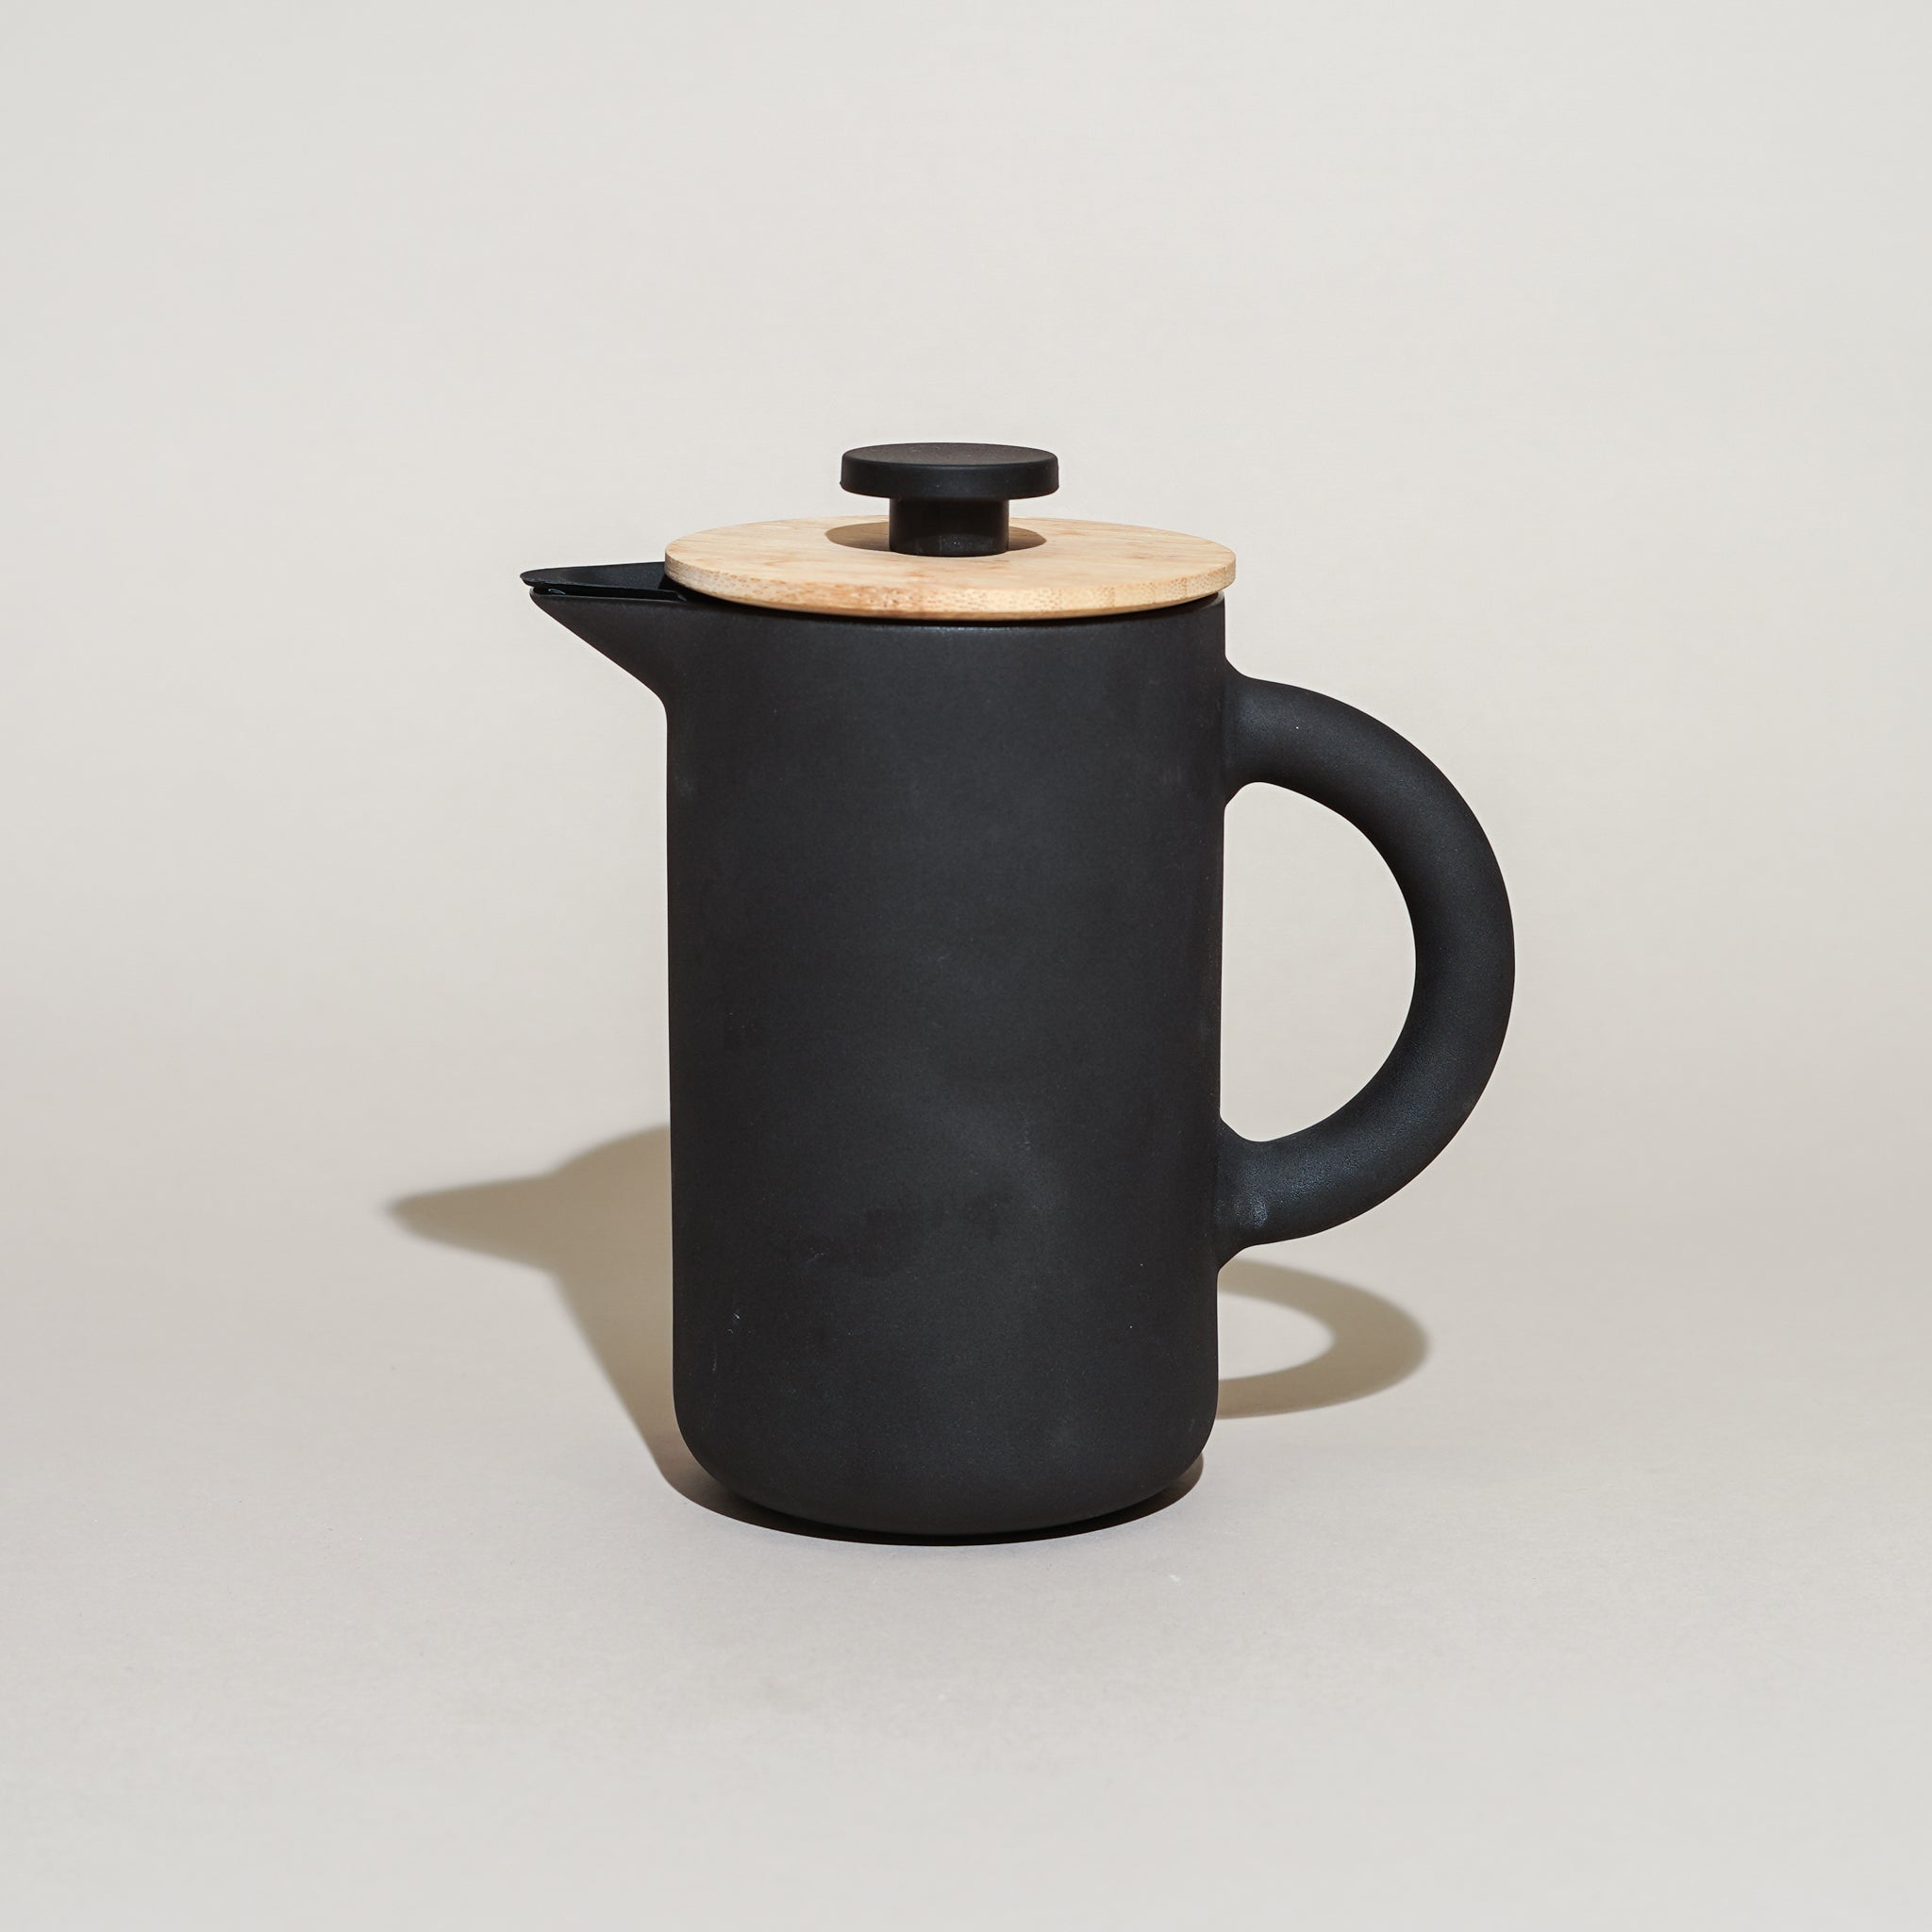 From Stelton, the Theo French Press.